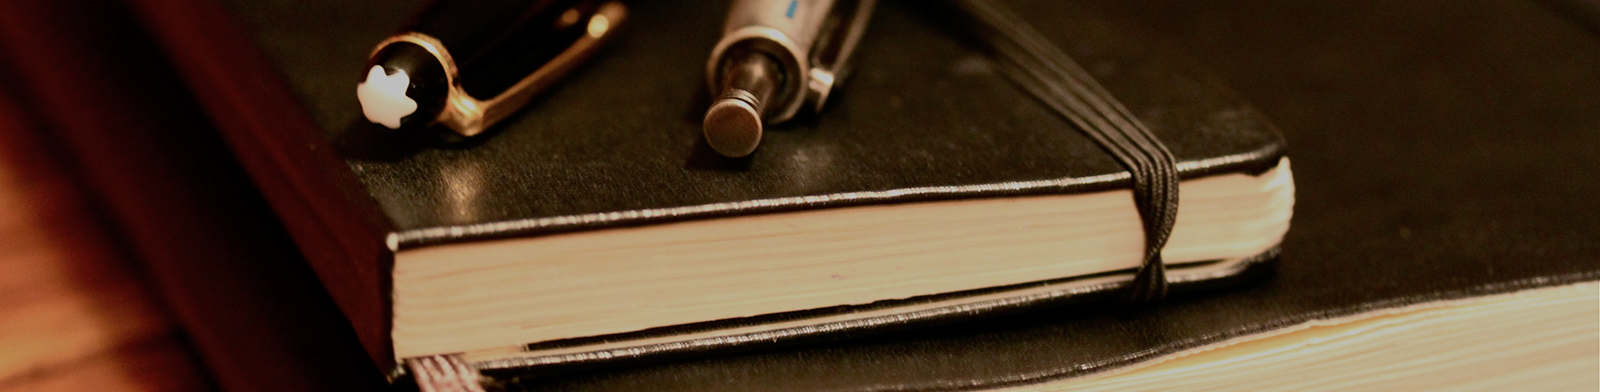 notebook-on-wood-long